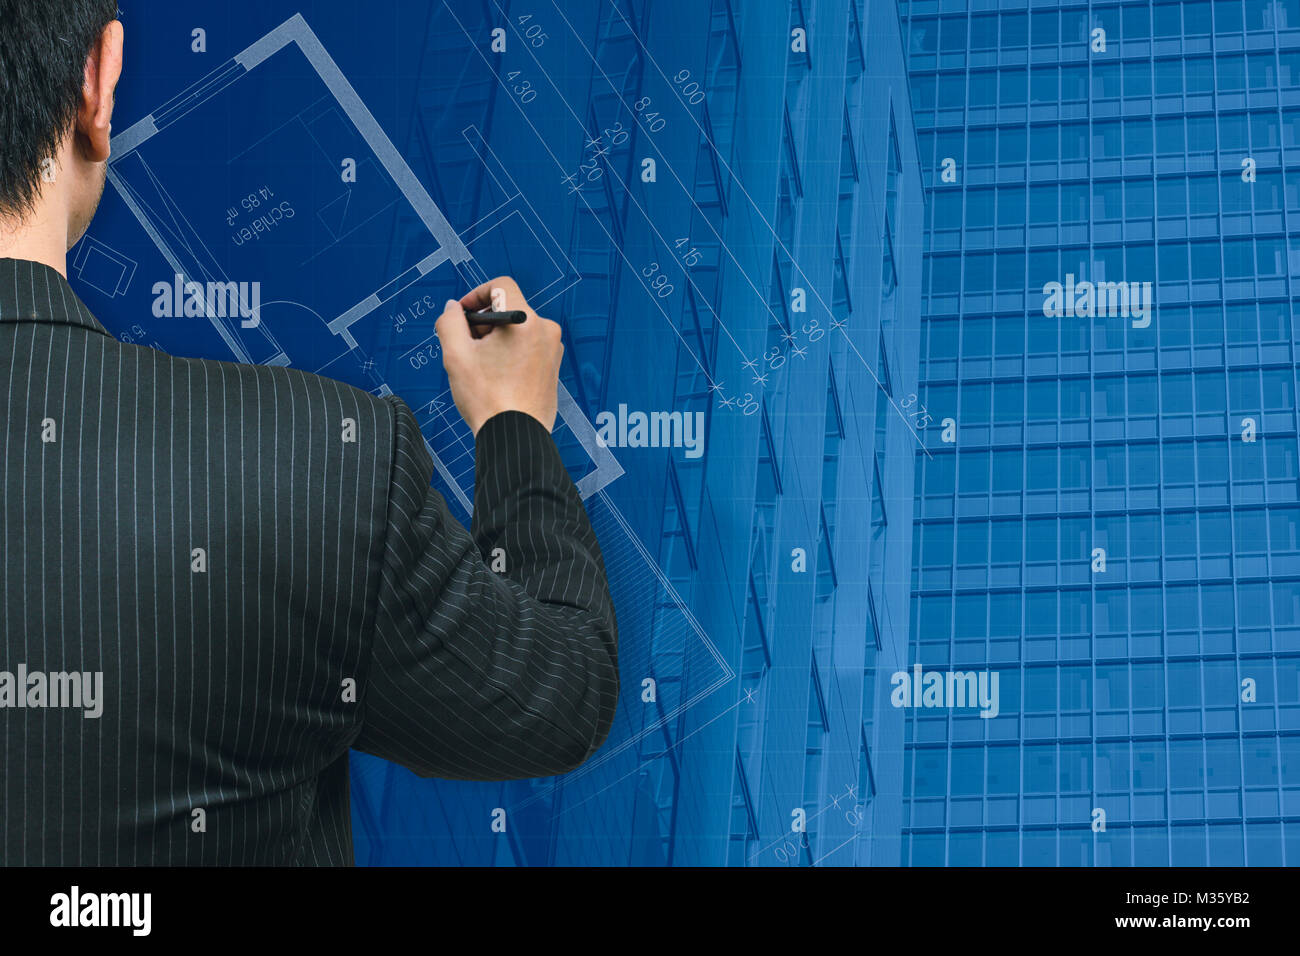 Business man or Architecture Drawing City Good build modern metro wealth and fortune business city concept. - Stock Image